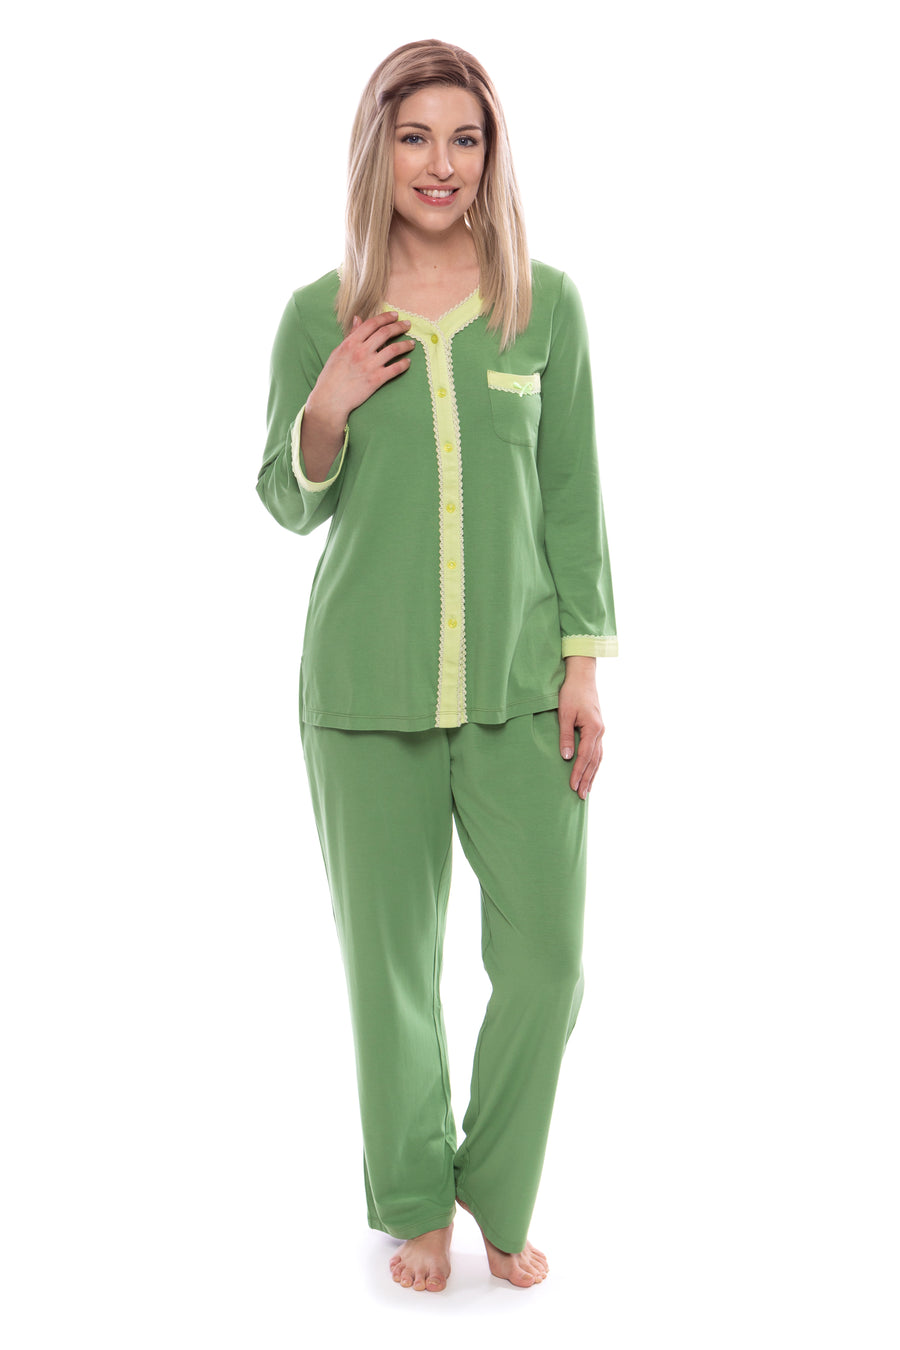 Eco Nirvana - Women's Long Sleeve Pajamas - Clearance - TexereSilk